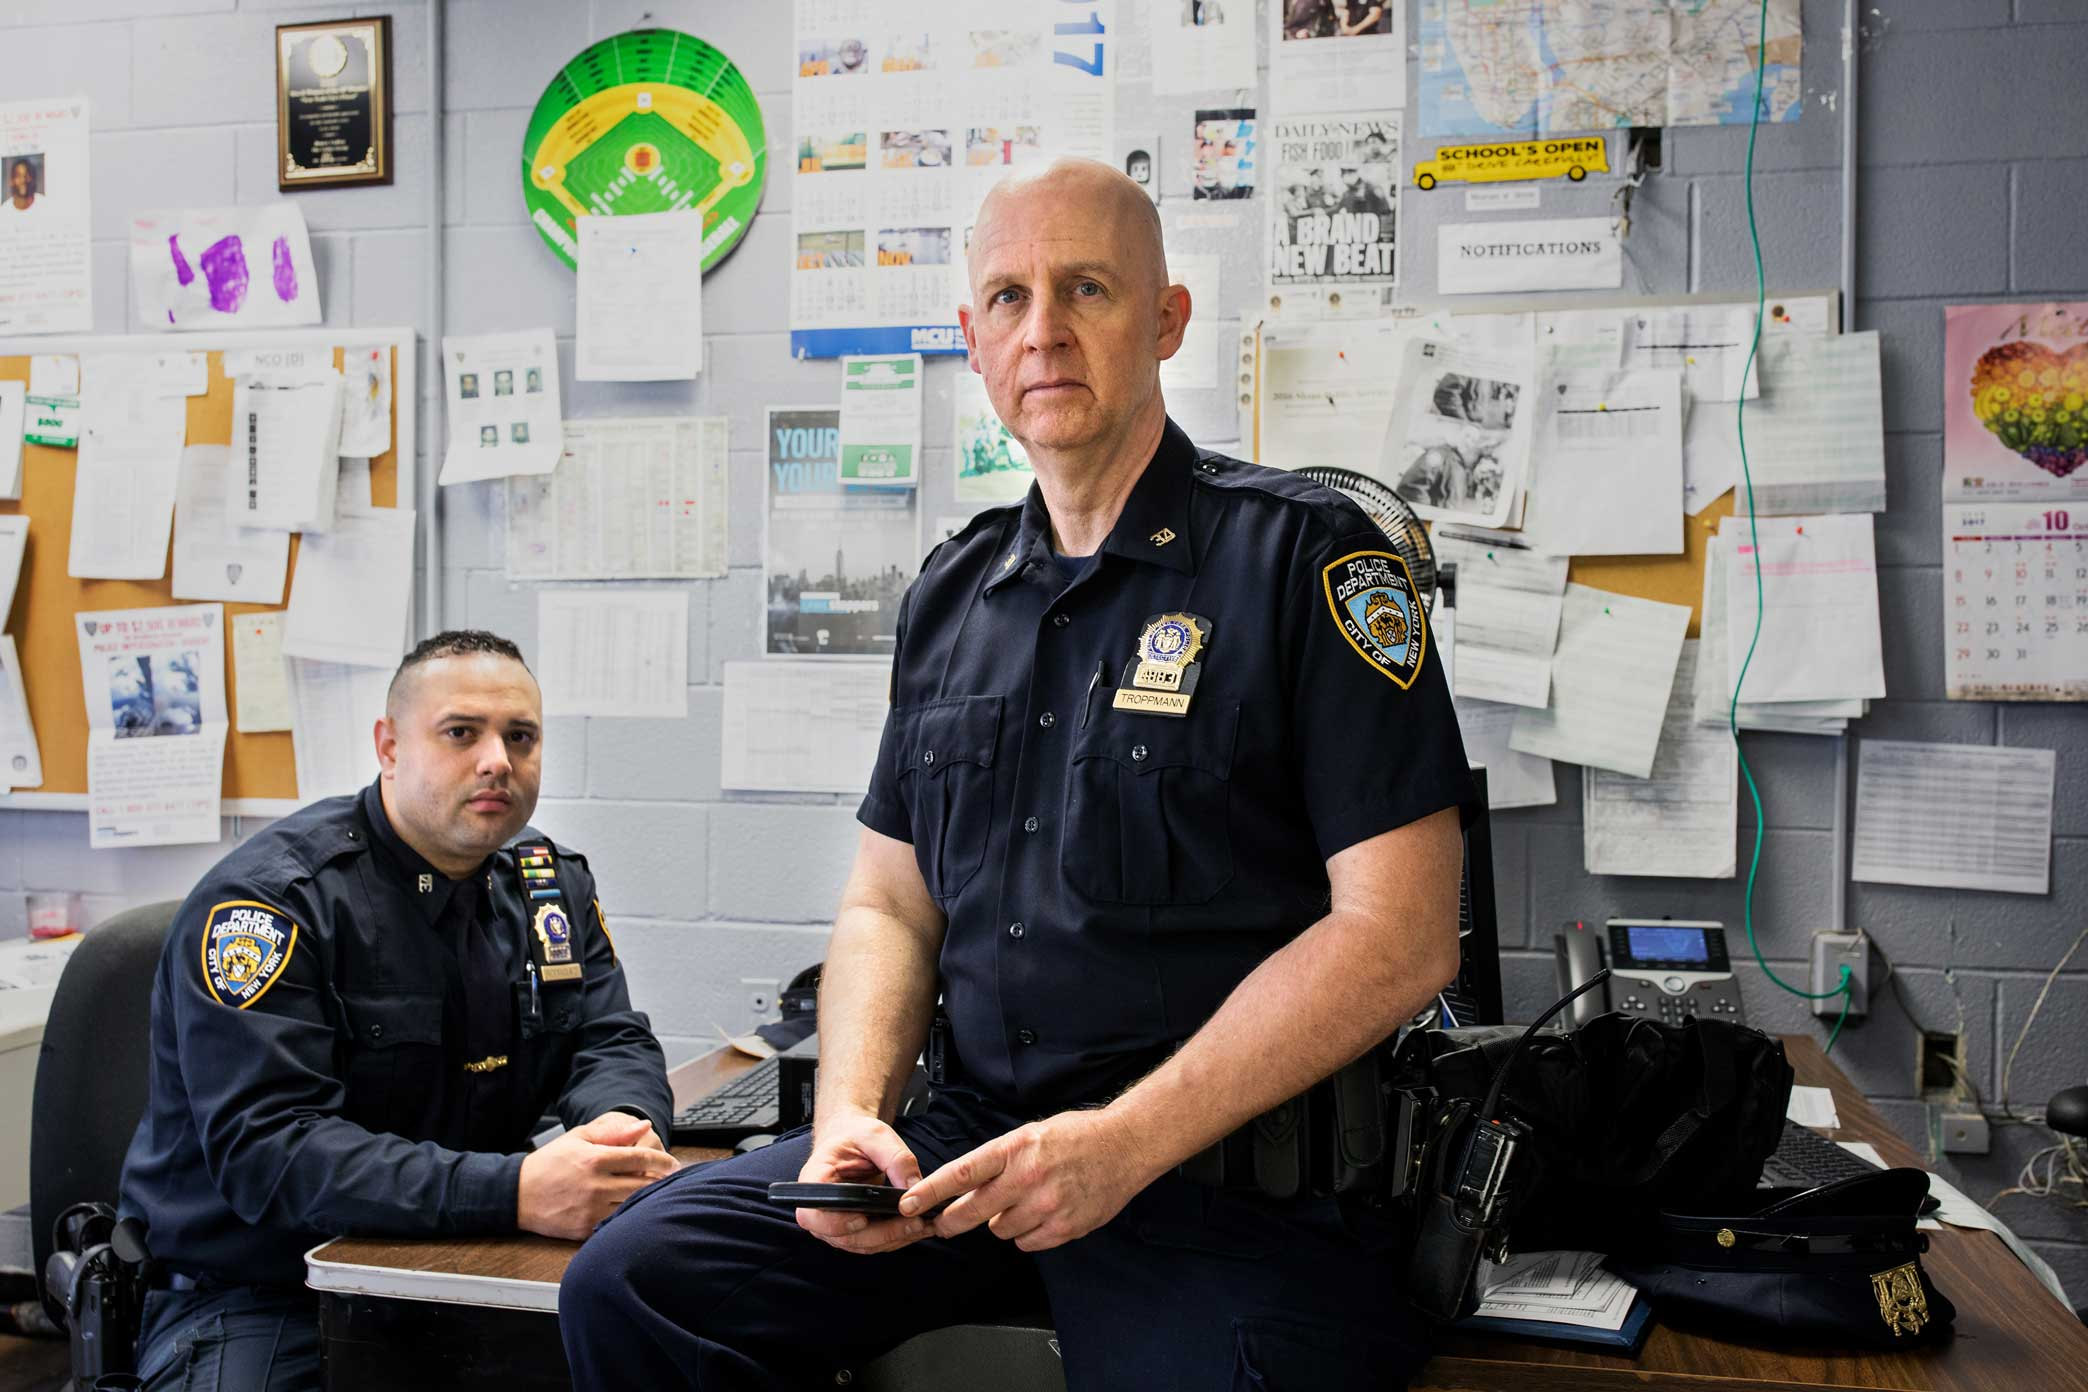 Detective Specialist Thomas W. Troppmann, center, and his partner Detective Specialist Edwin A. Rodriguez at the 34th Precinct in Upper Manhattan.Rodriguez and Troppmann are Neighborhood Coordinating Officers in the precinct who interact directly with the surrounding community in order to improve police and community relations to reduce crime.  Story link  here .